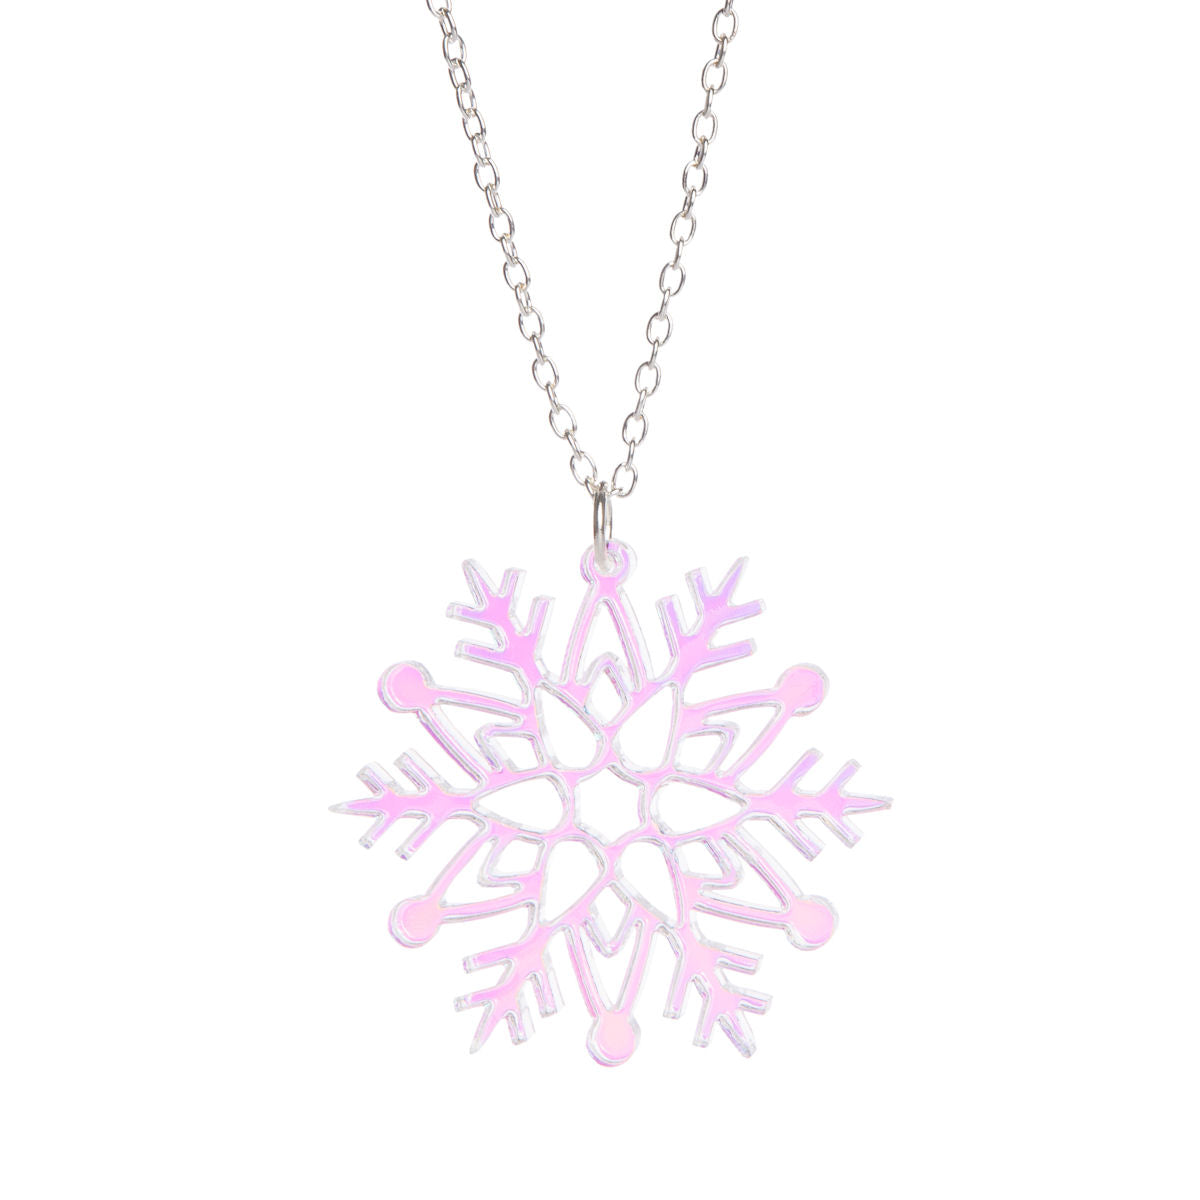 showthelove snapseed snowflake product necklace